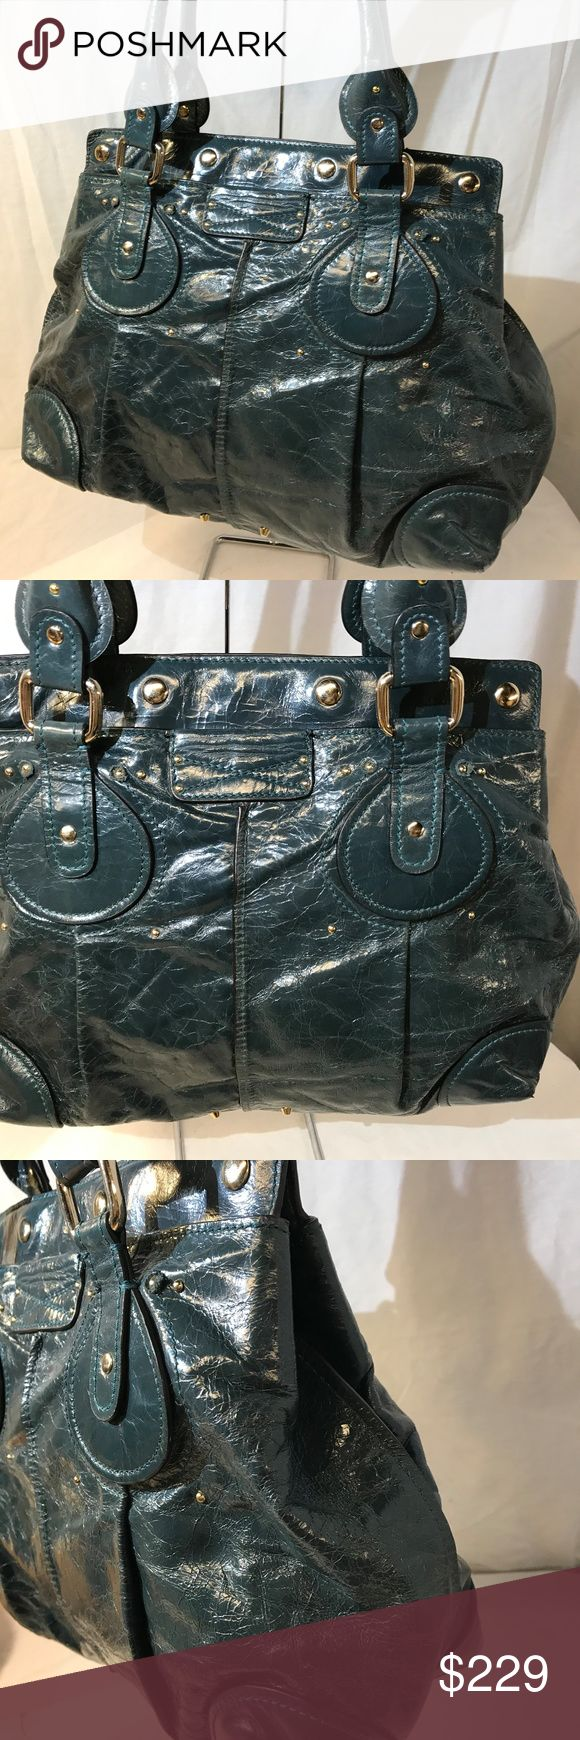 """Chloe vintage distressed soft leather handbag 17.5""""/12""""/5"""". 8"""" drop. in pristine condition, gently worn, imported. Chloe Bags Satchels"""